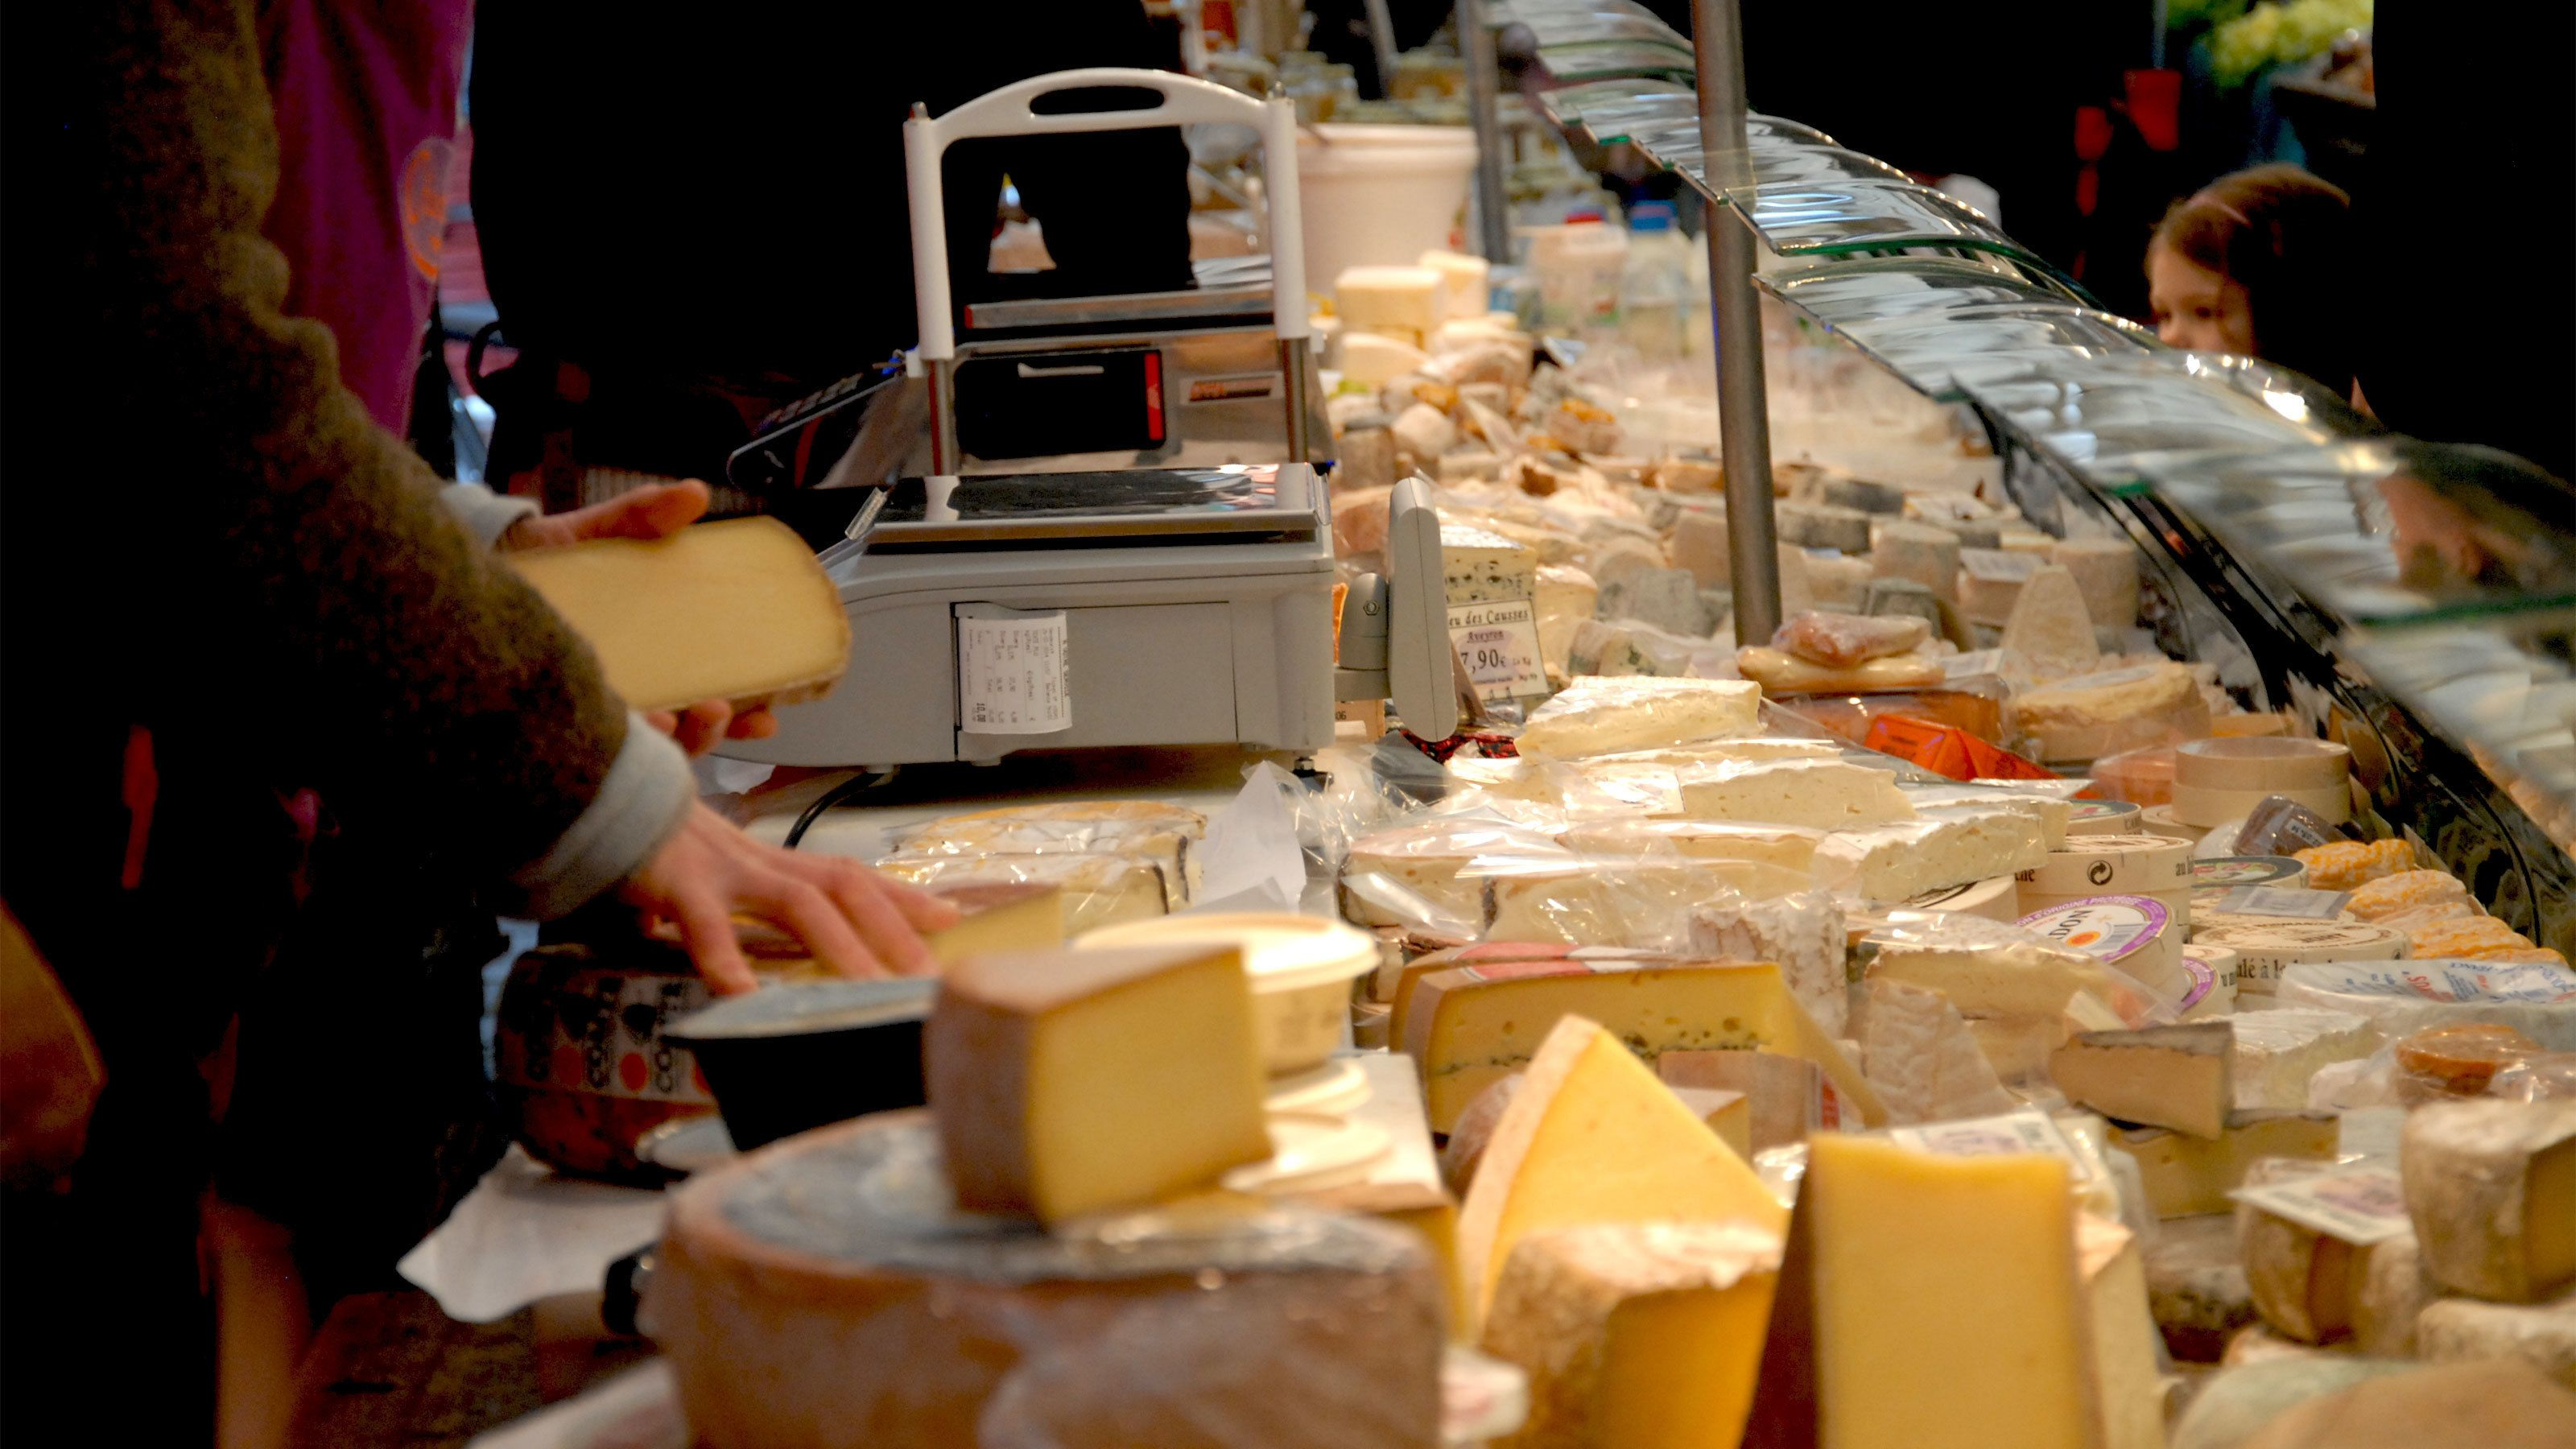 Wheels of cheese for sale at a Paris market